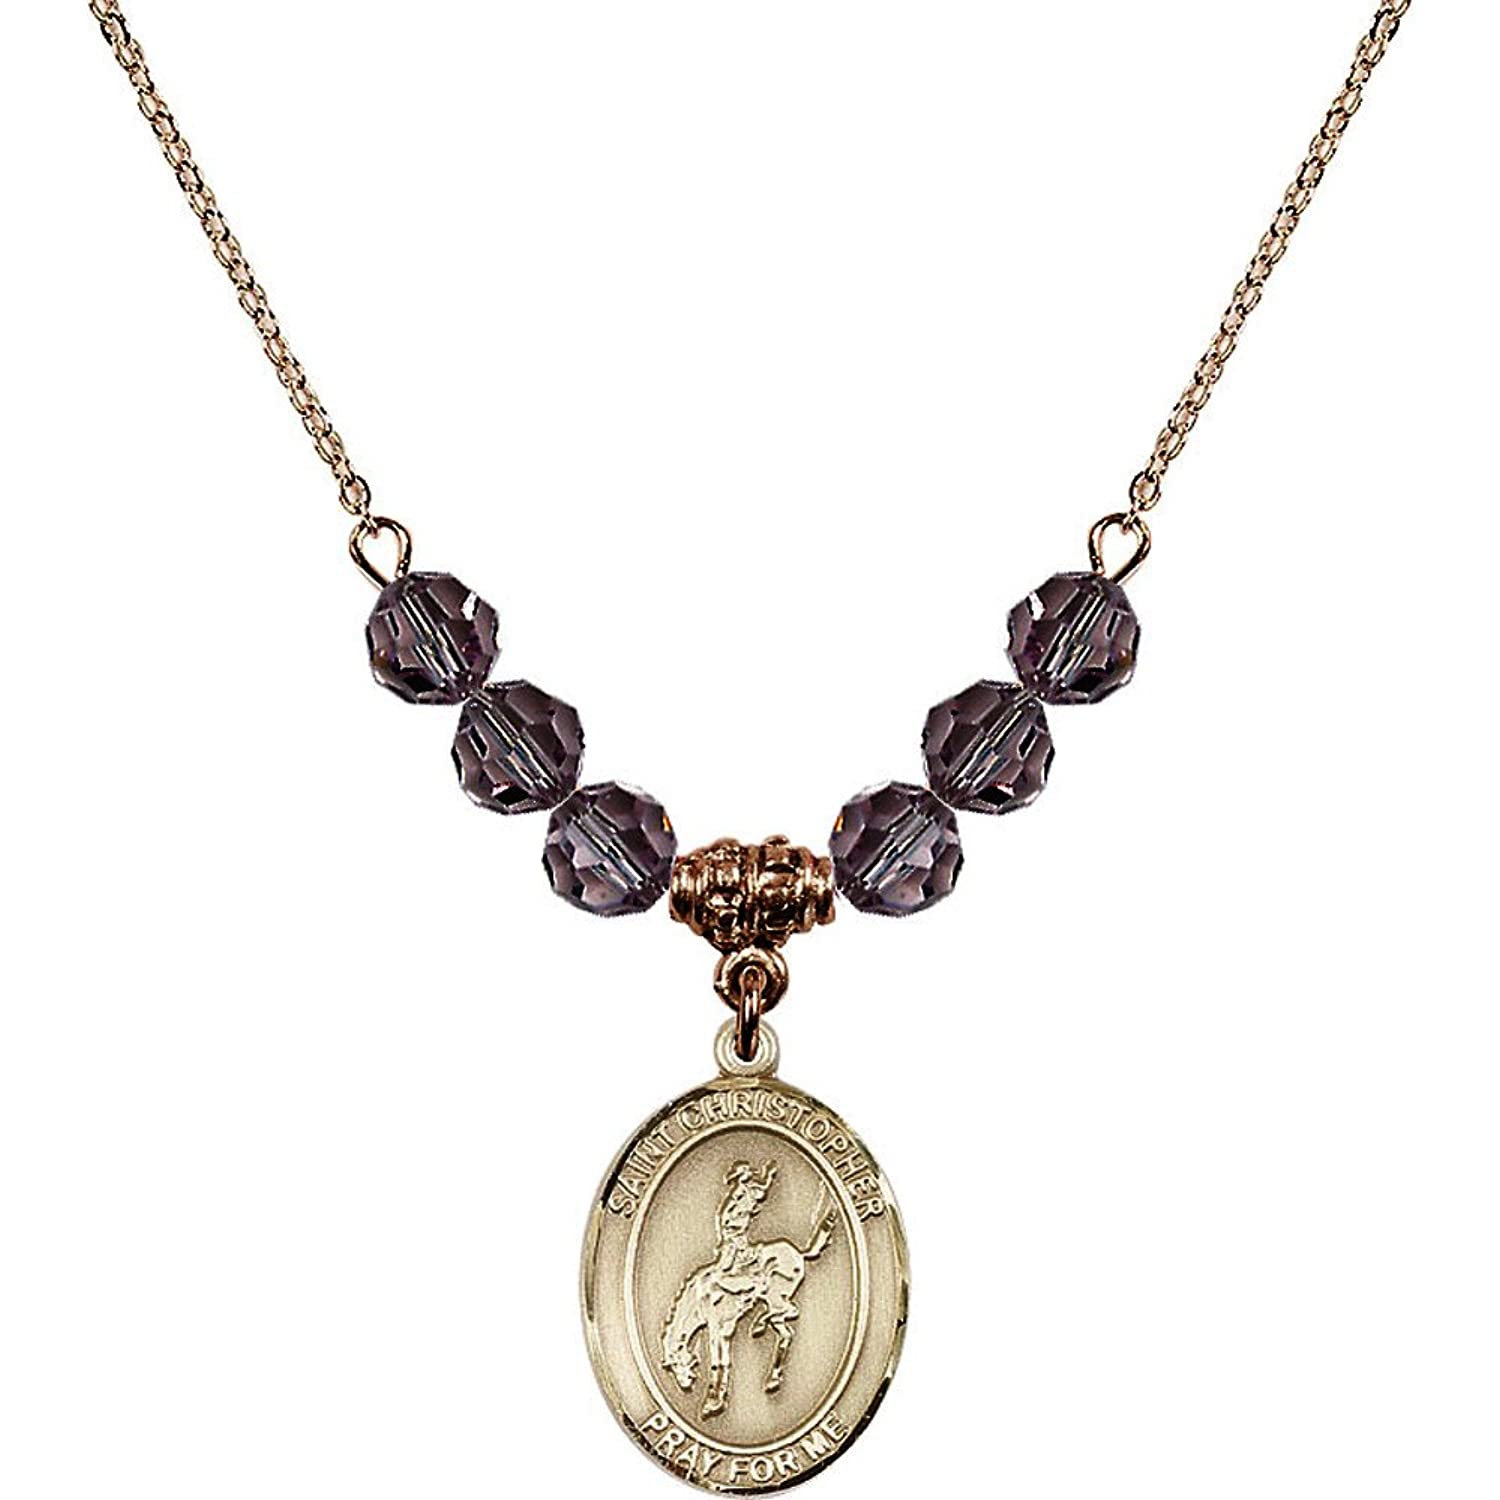 18-Inch Hamilton Gold Plated Necklace w/ 6mm Light Purple February Birth Month Stone Beads & Saint Christopher / Rodeo Charm